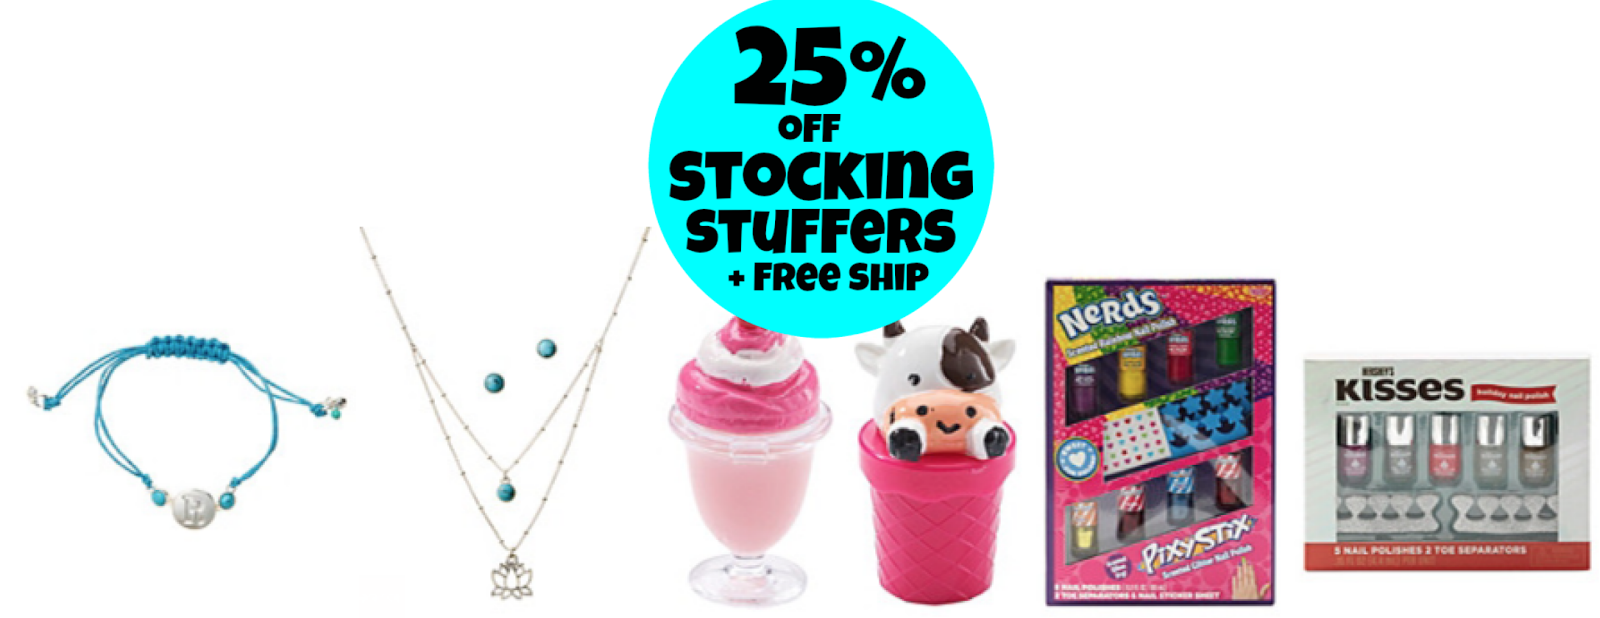 http://www.thebinderladies.com/2014/12/bonton-10-25-off-stocking-stuffers-free.html#.VIC3uofduyM